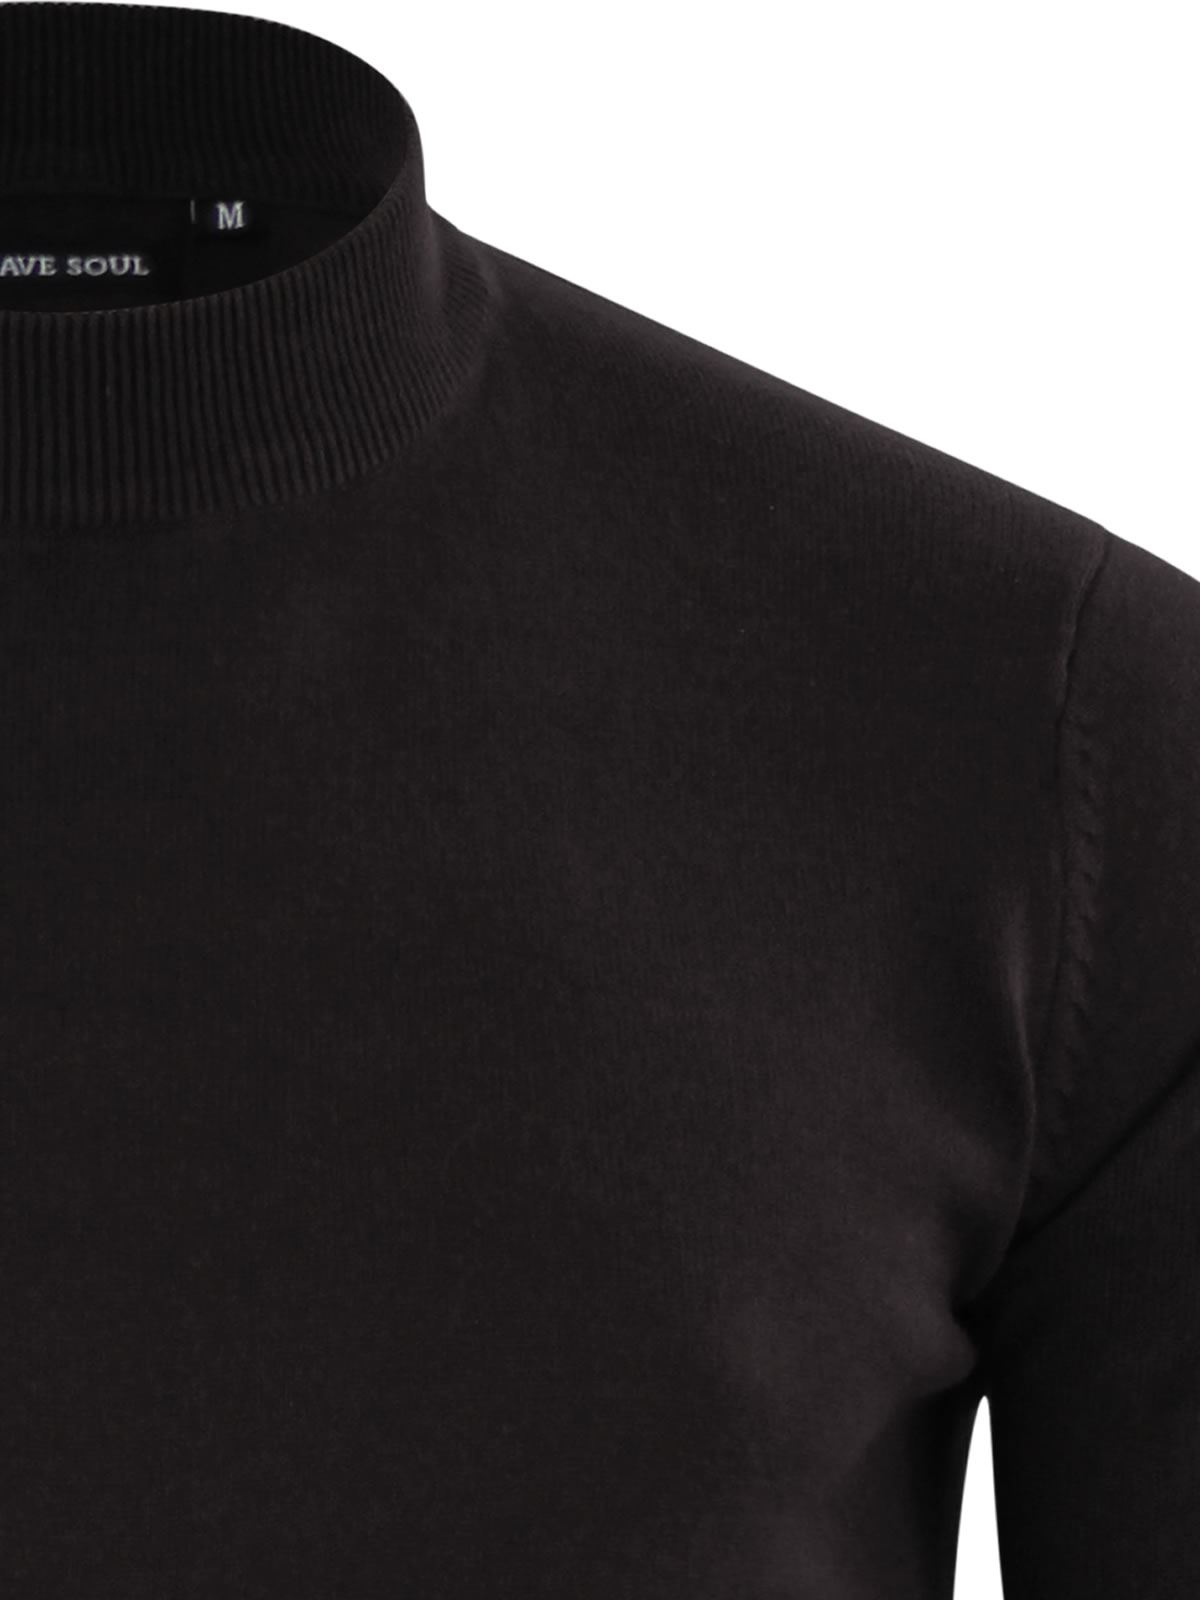 Mens-Jumper-Brave-Soul-Turtle-Neck-Cotton-Pull-Over-Sweater thumbnail 7